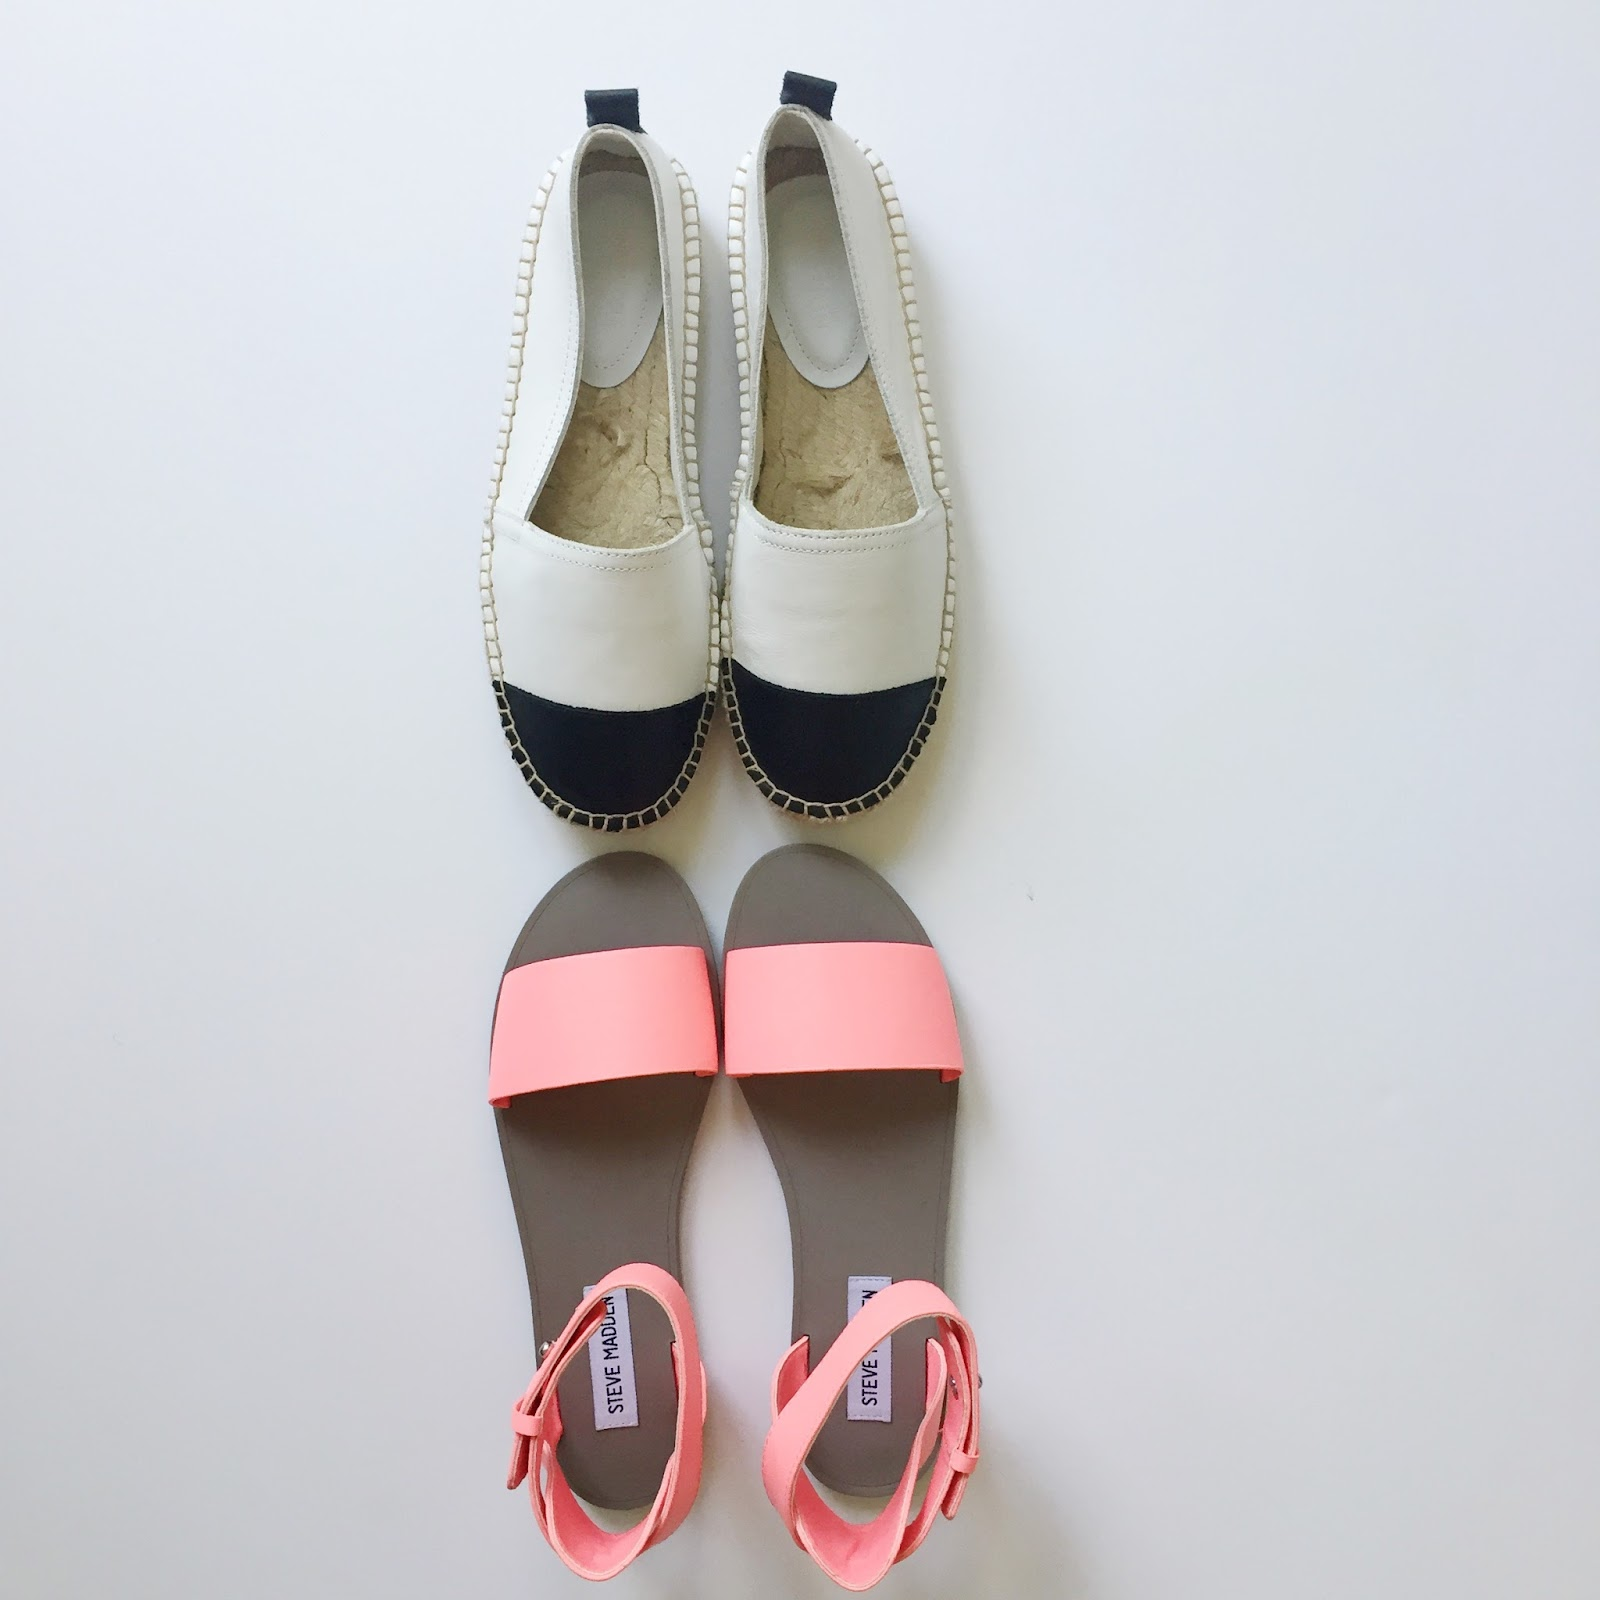 Merrick's Art | Espadrilles and Neon Sandals